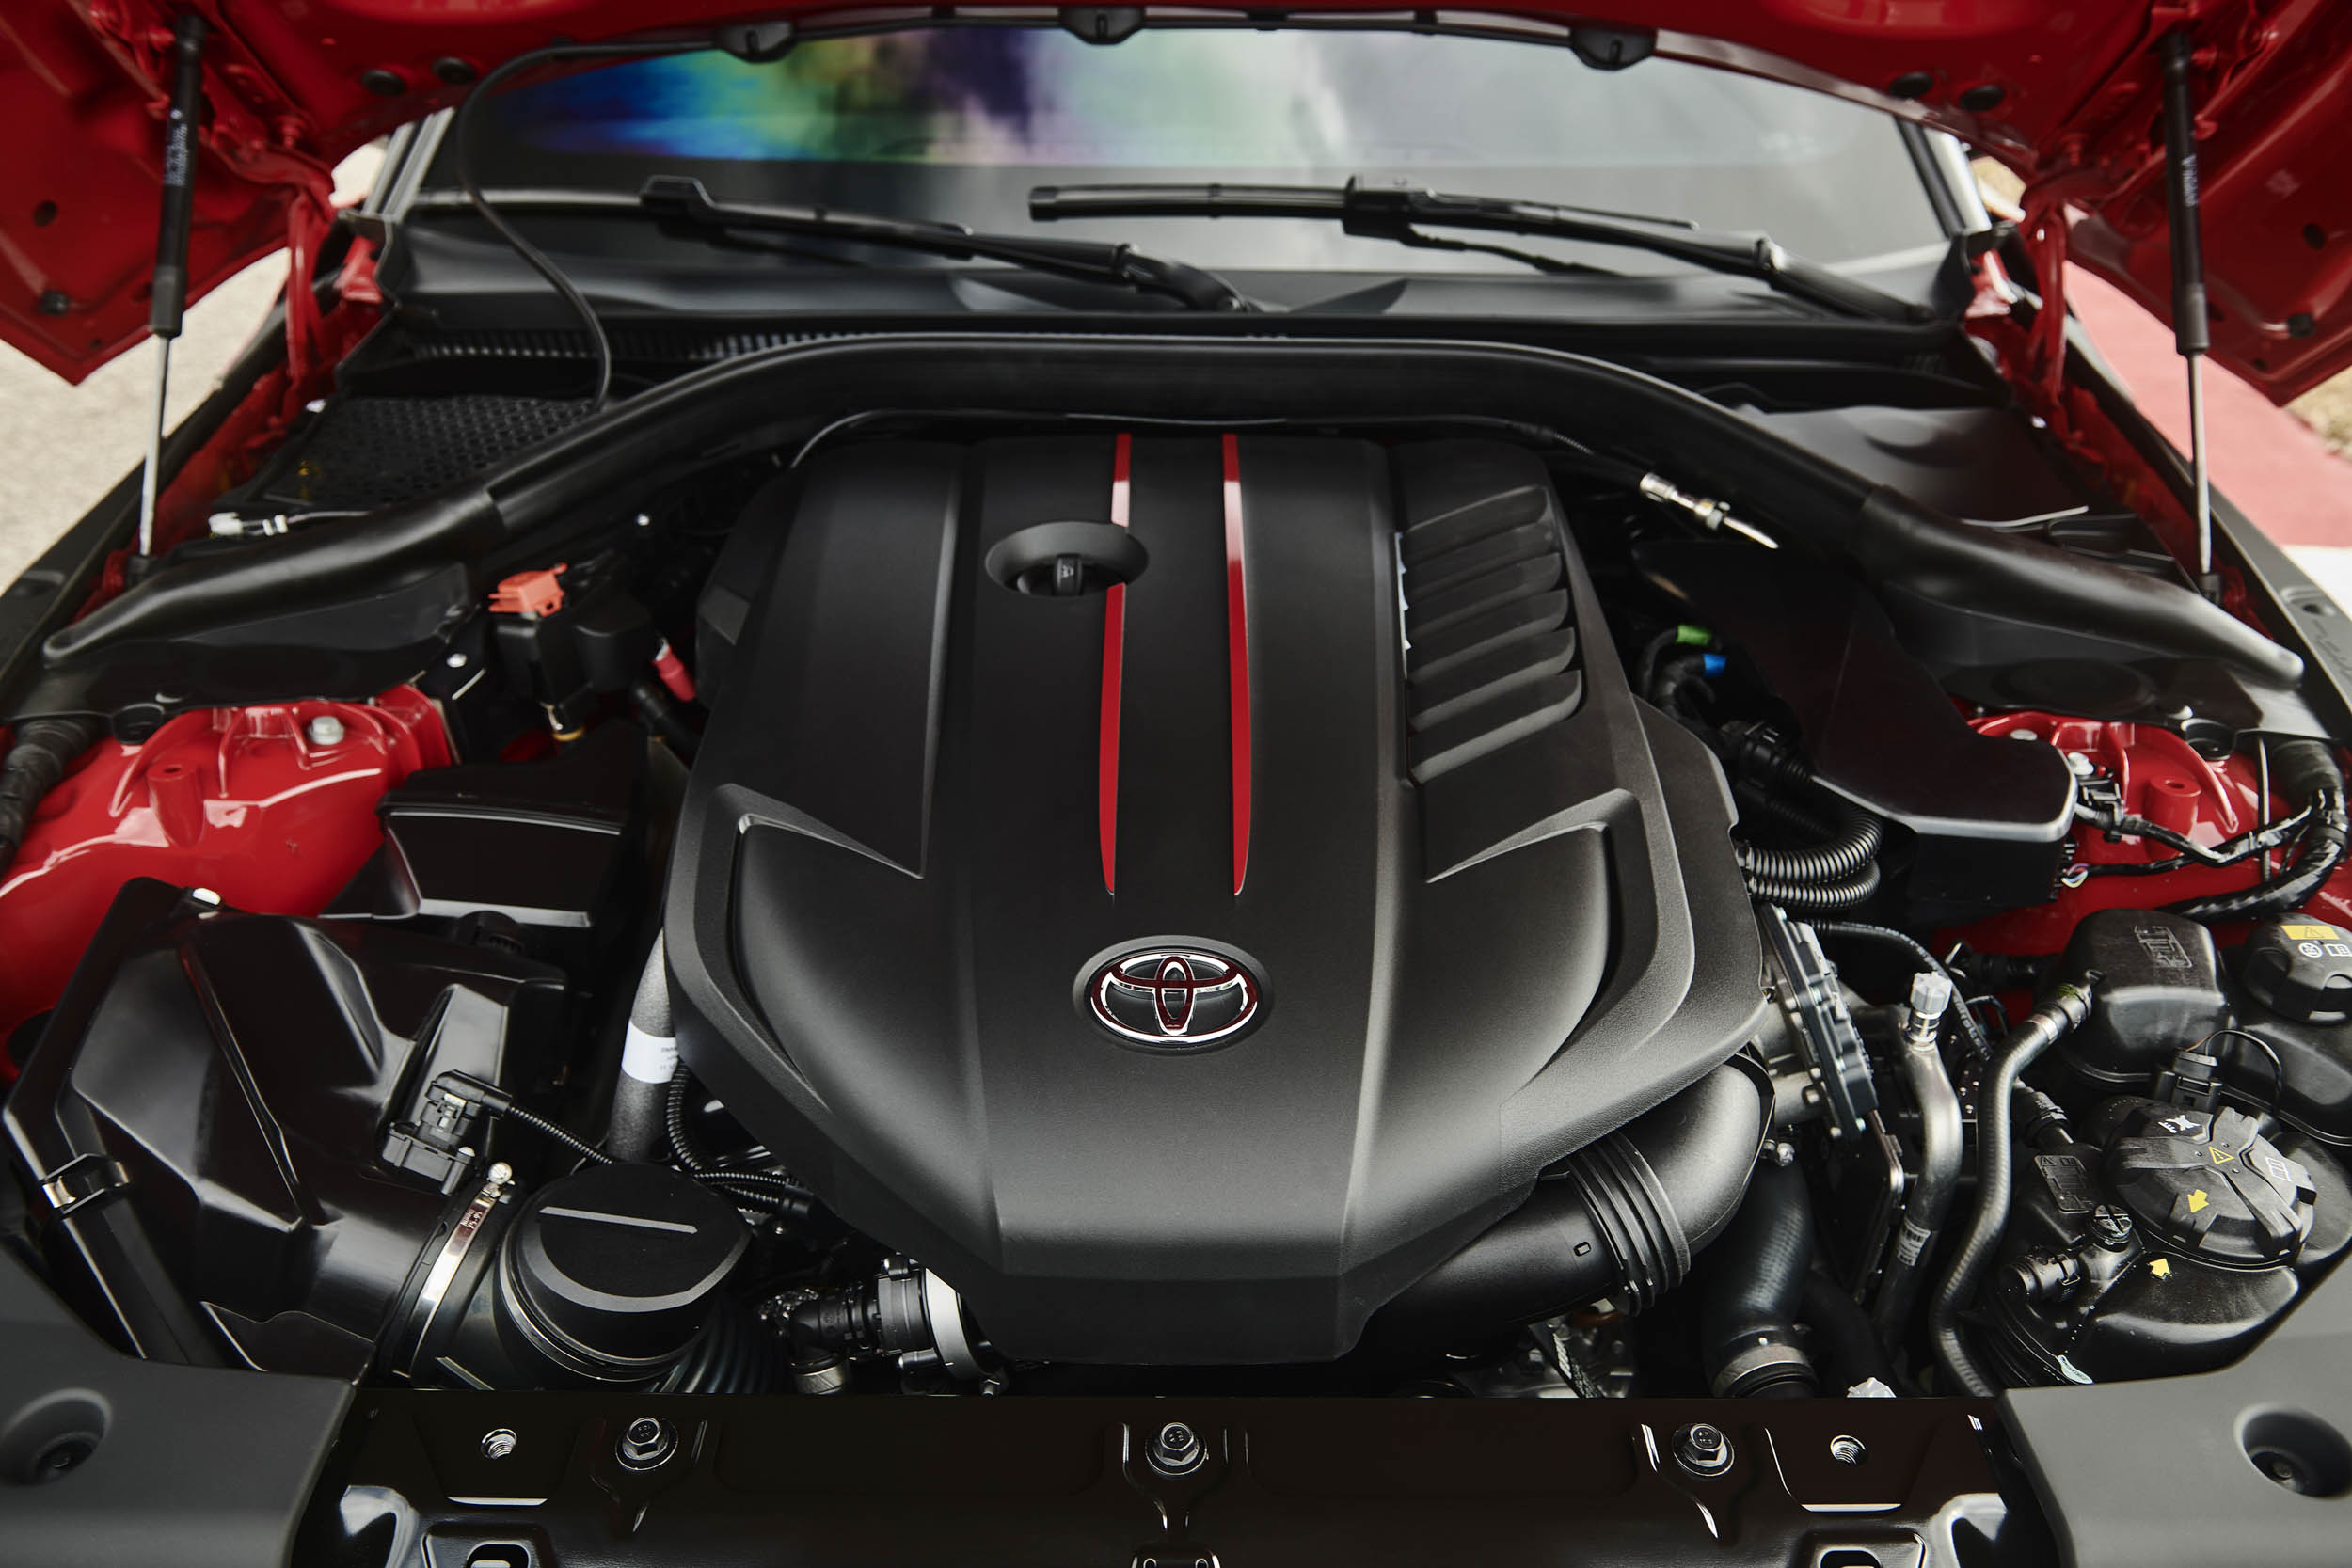 2020 Toyota Supra engine